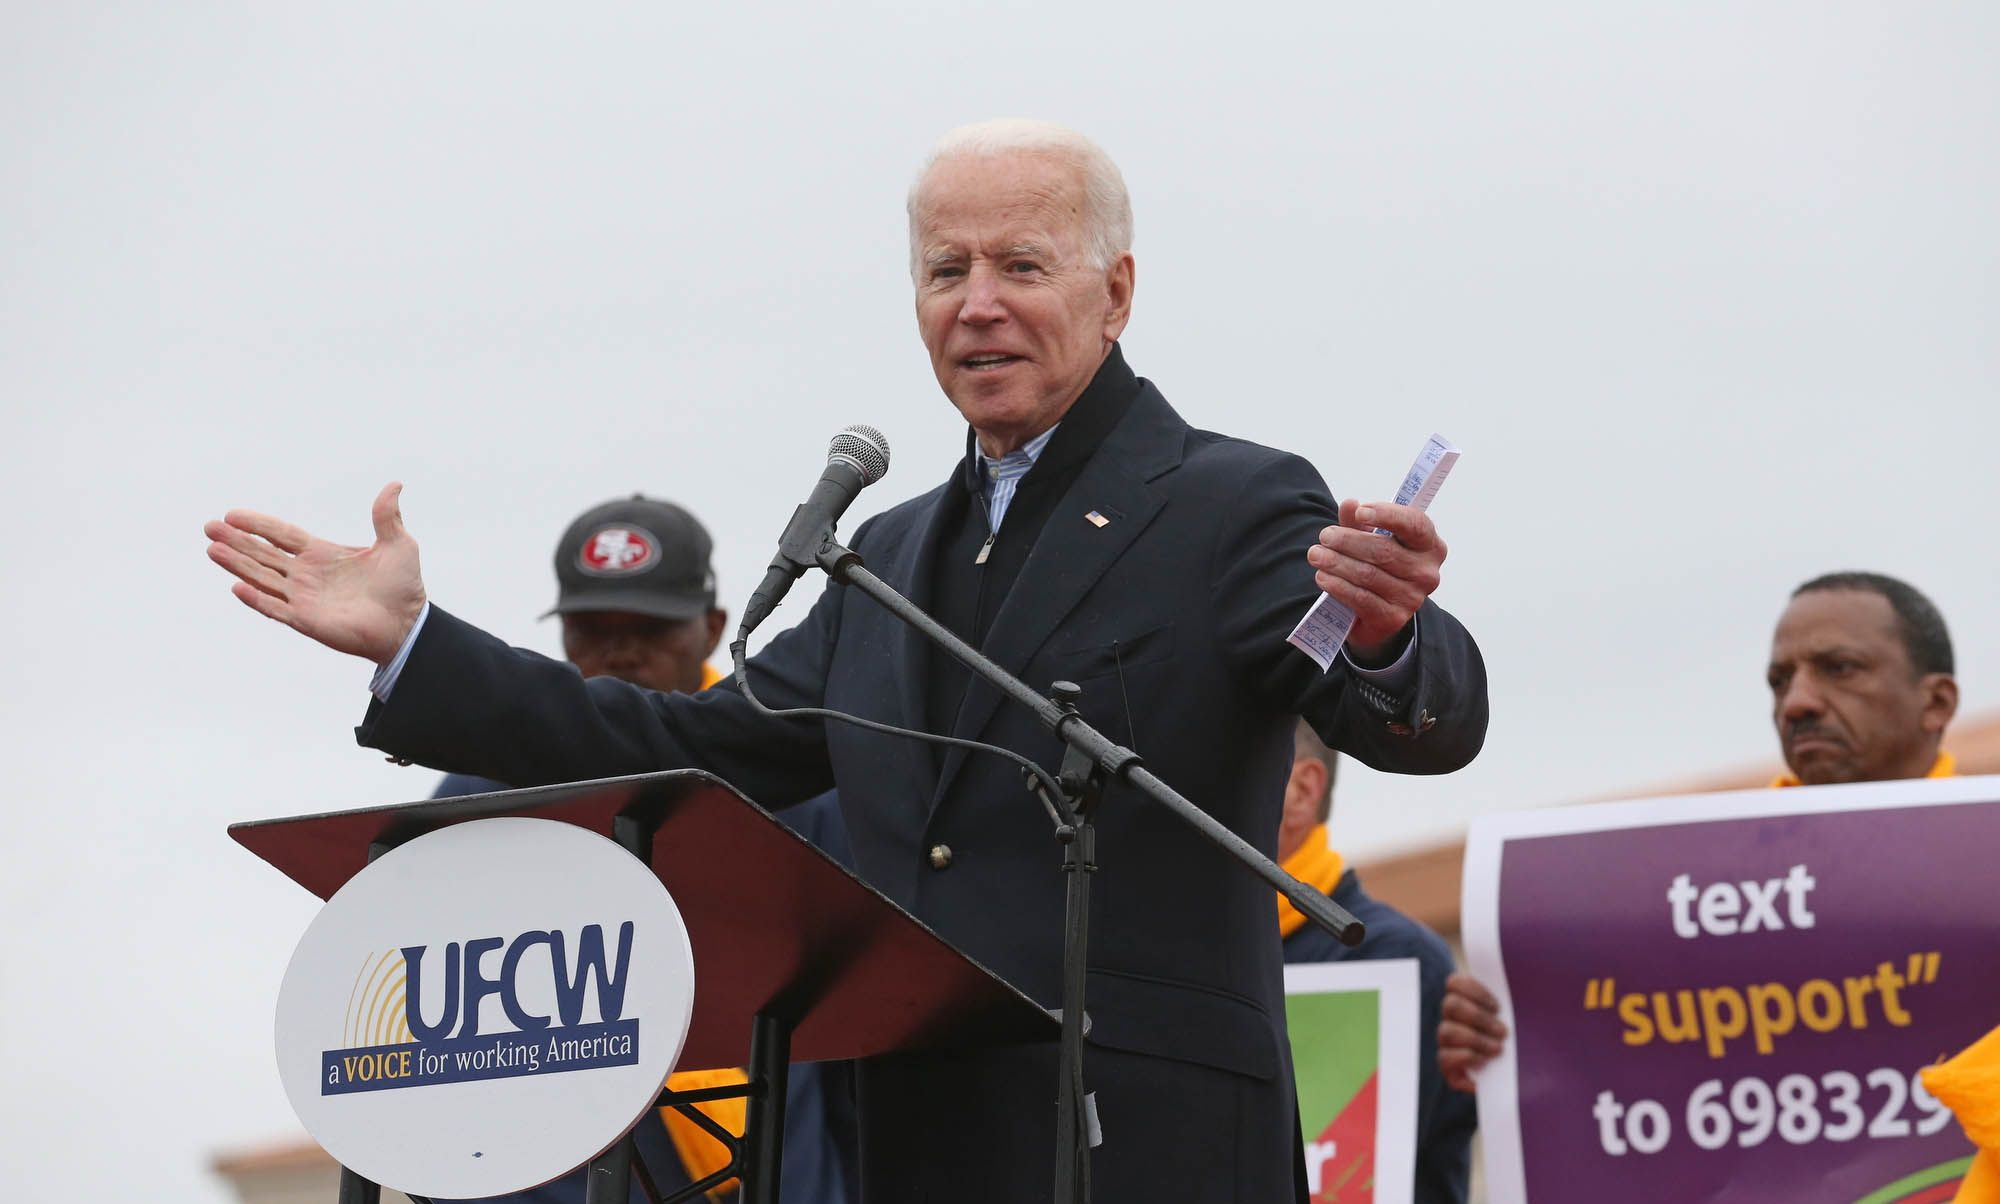 There Is No Room in the Democratic Field for Joe Biden